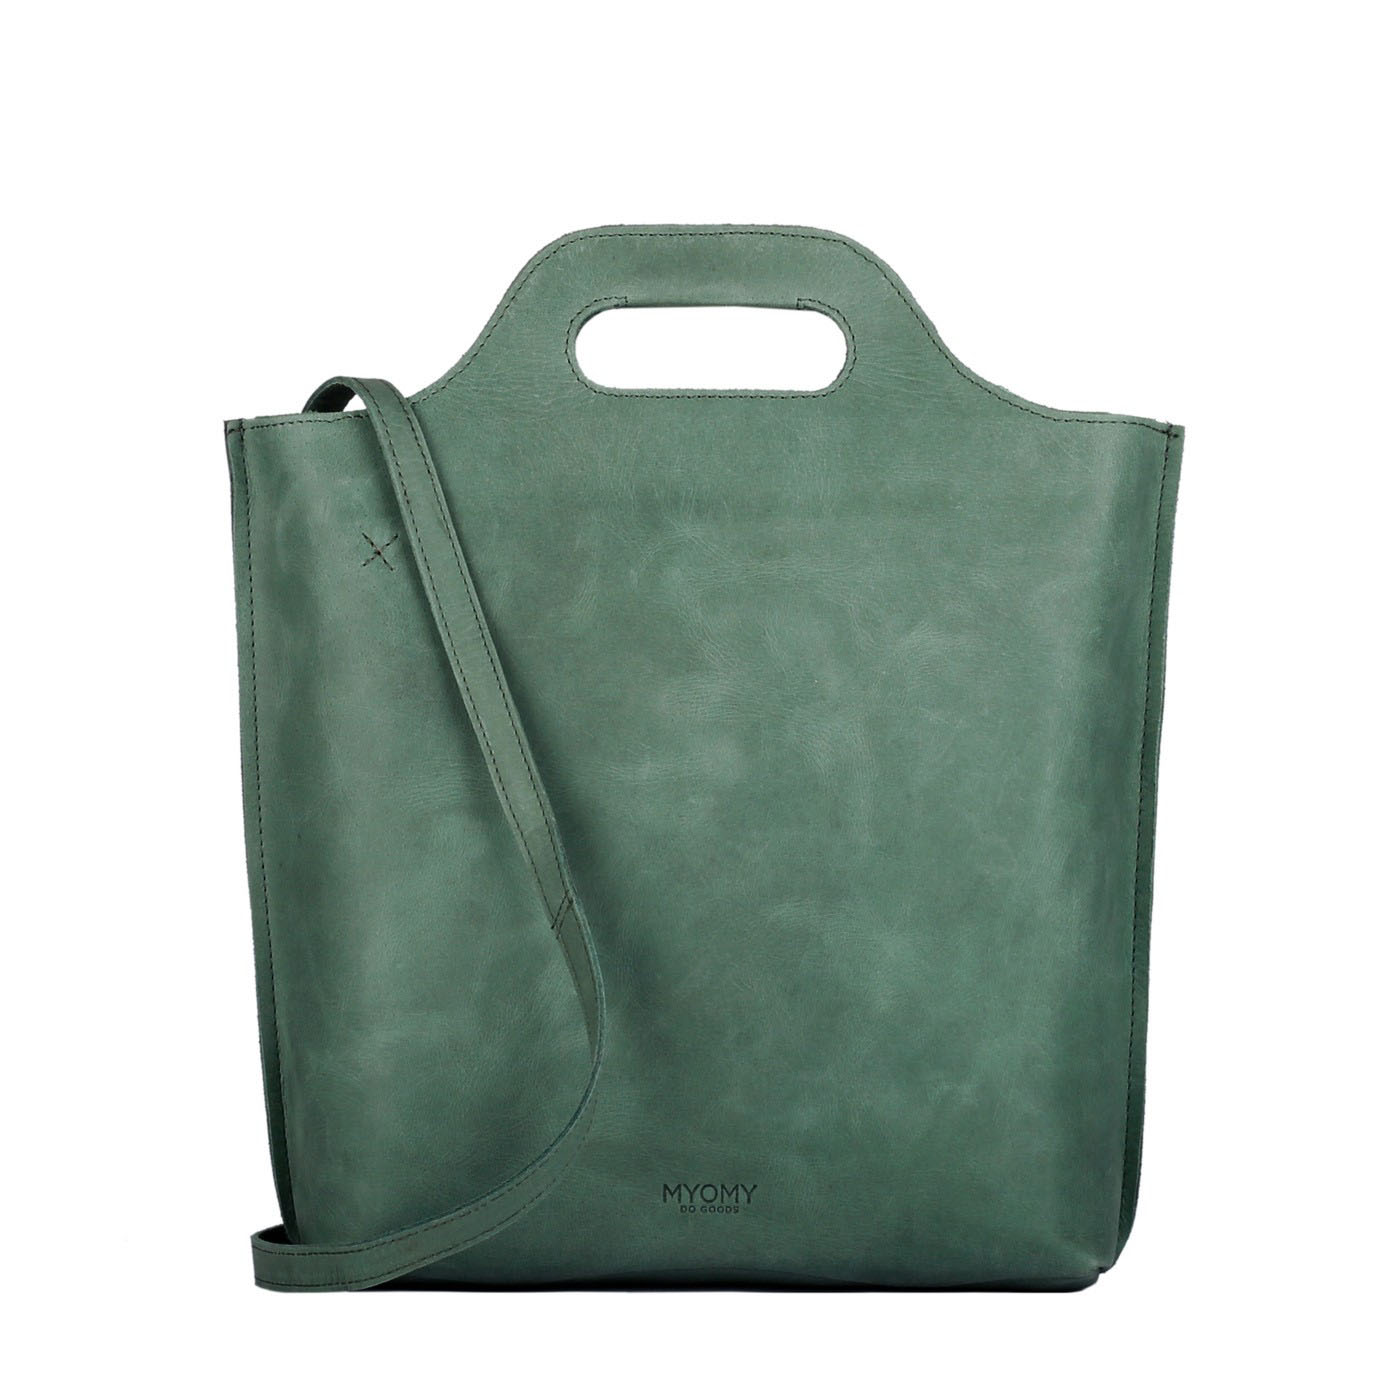 MY CARRY BAG shopper medium - hunter forest green